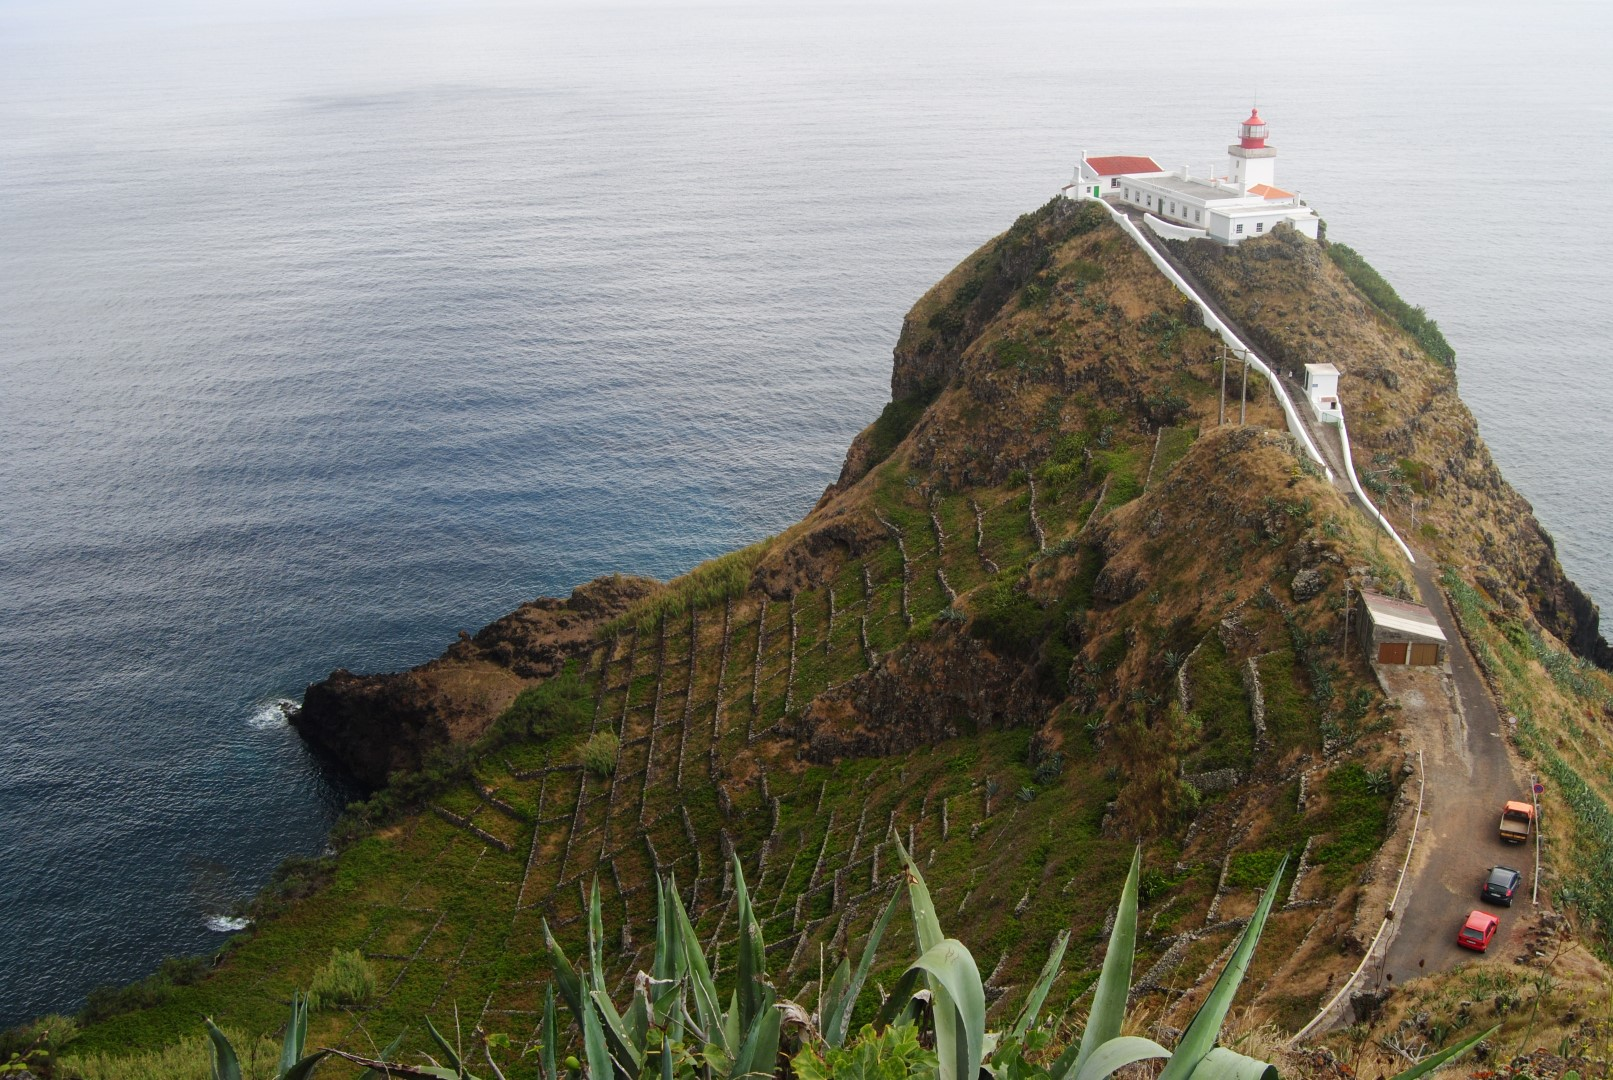 Maia Light house (Ponta do Castelo)